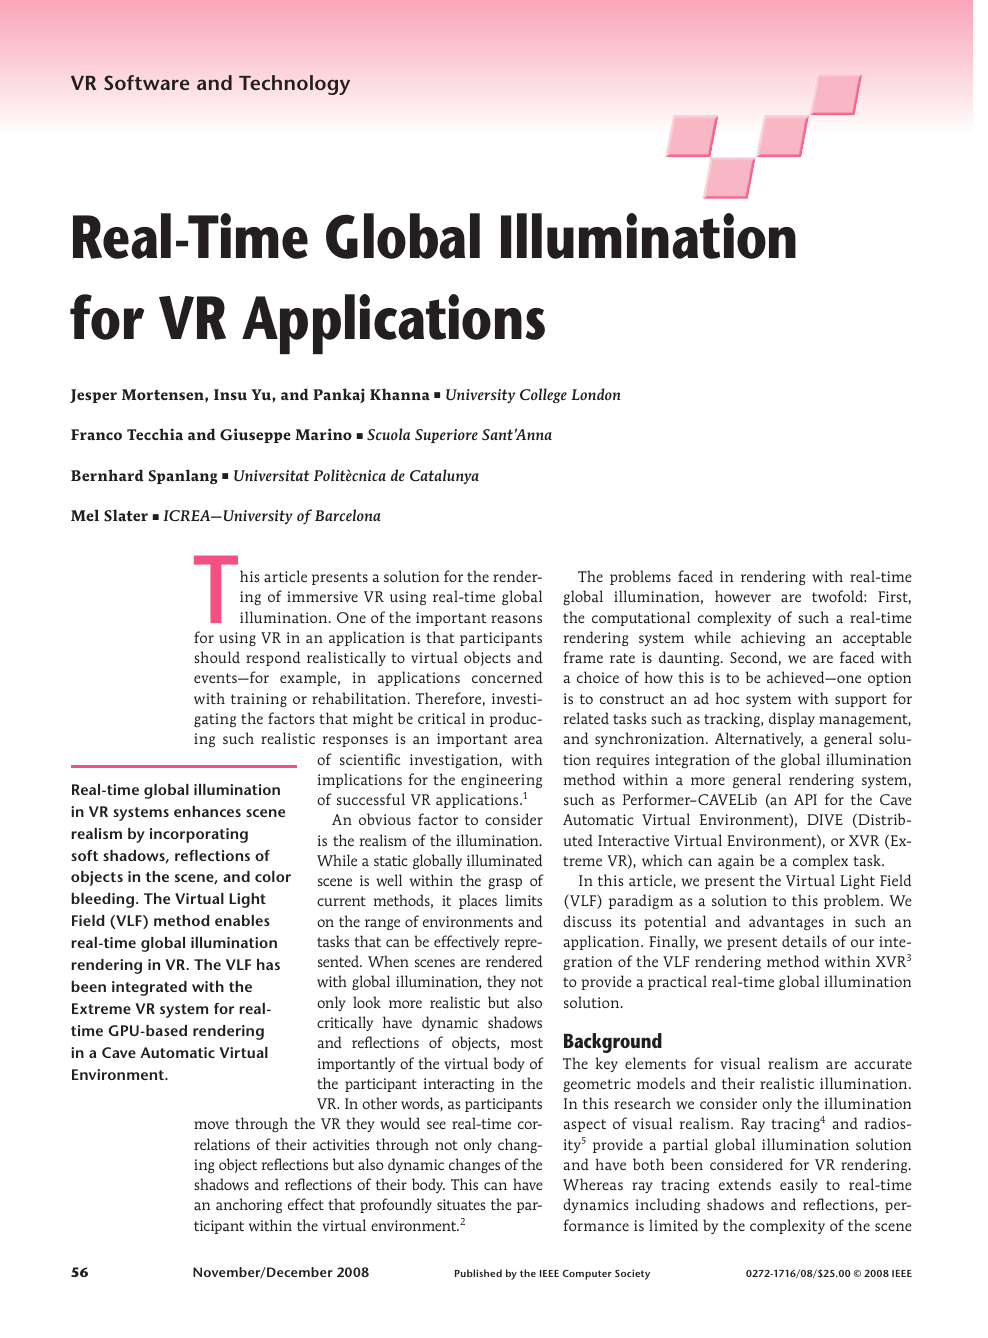 Real-Time Global Illumination for VR Applications – topic of